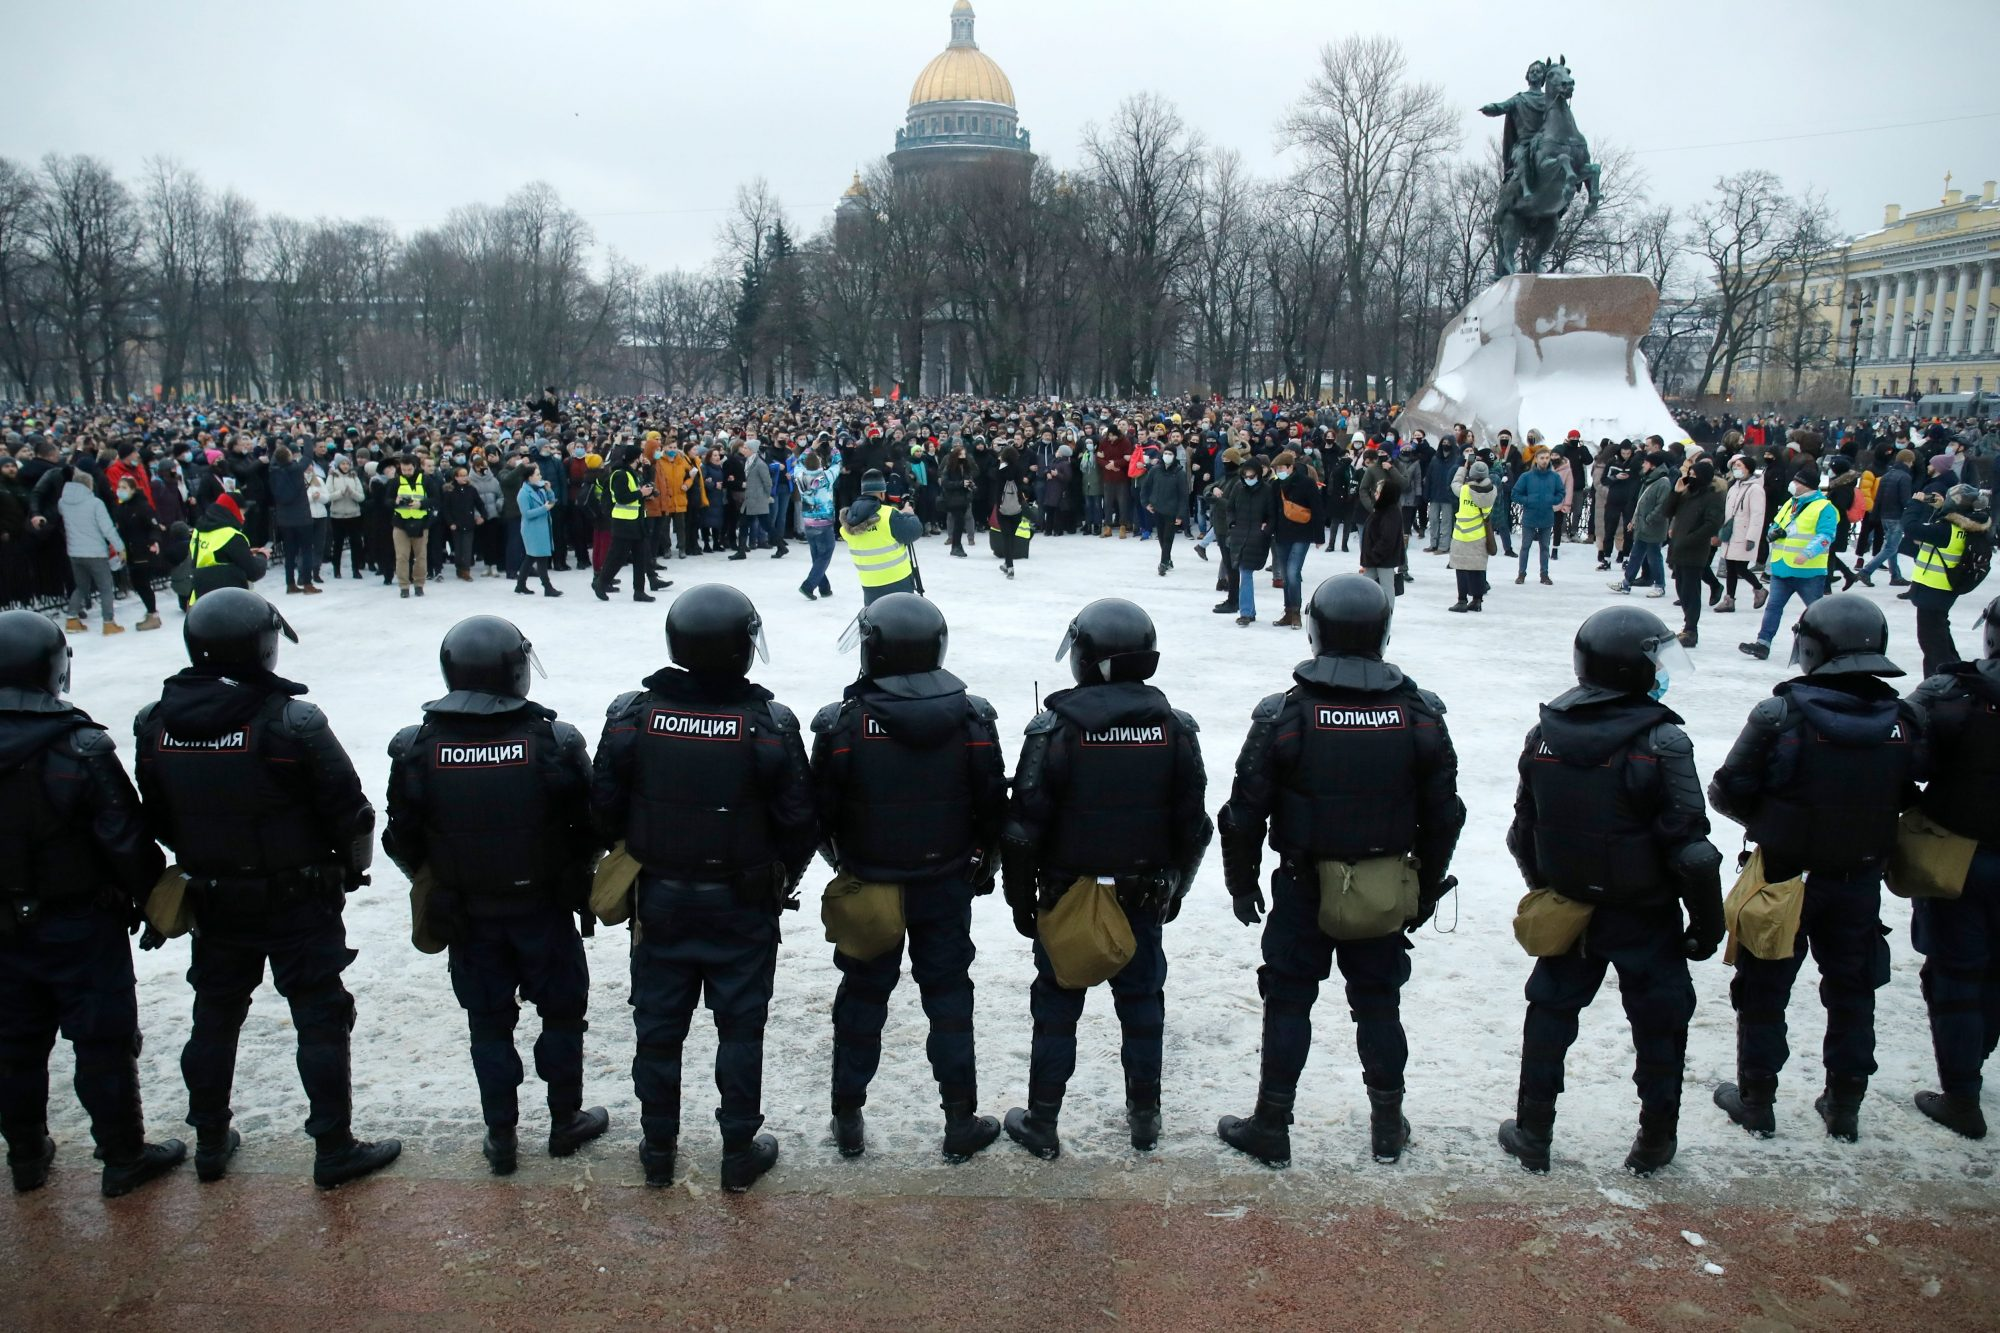 Mass arrests as pro-Navalny protests sweep Russia - channel 4